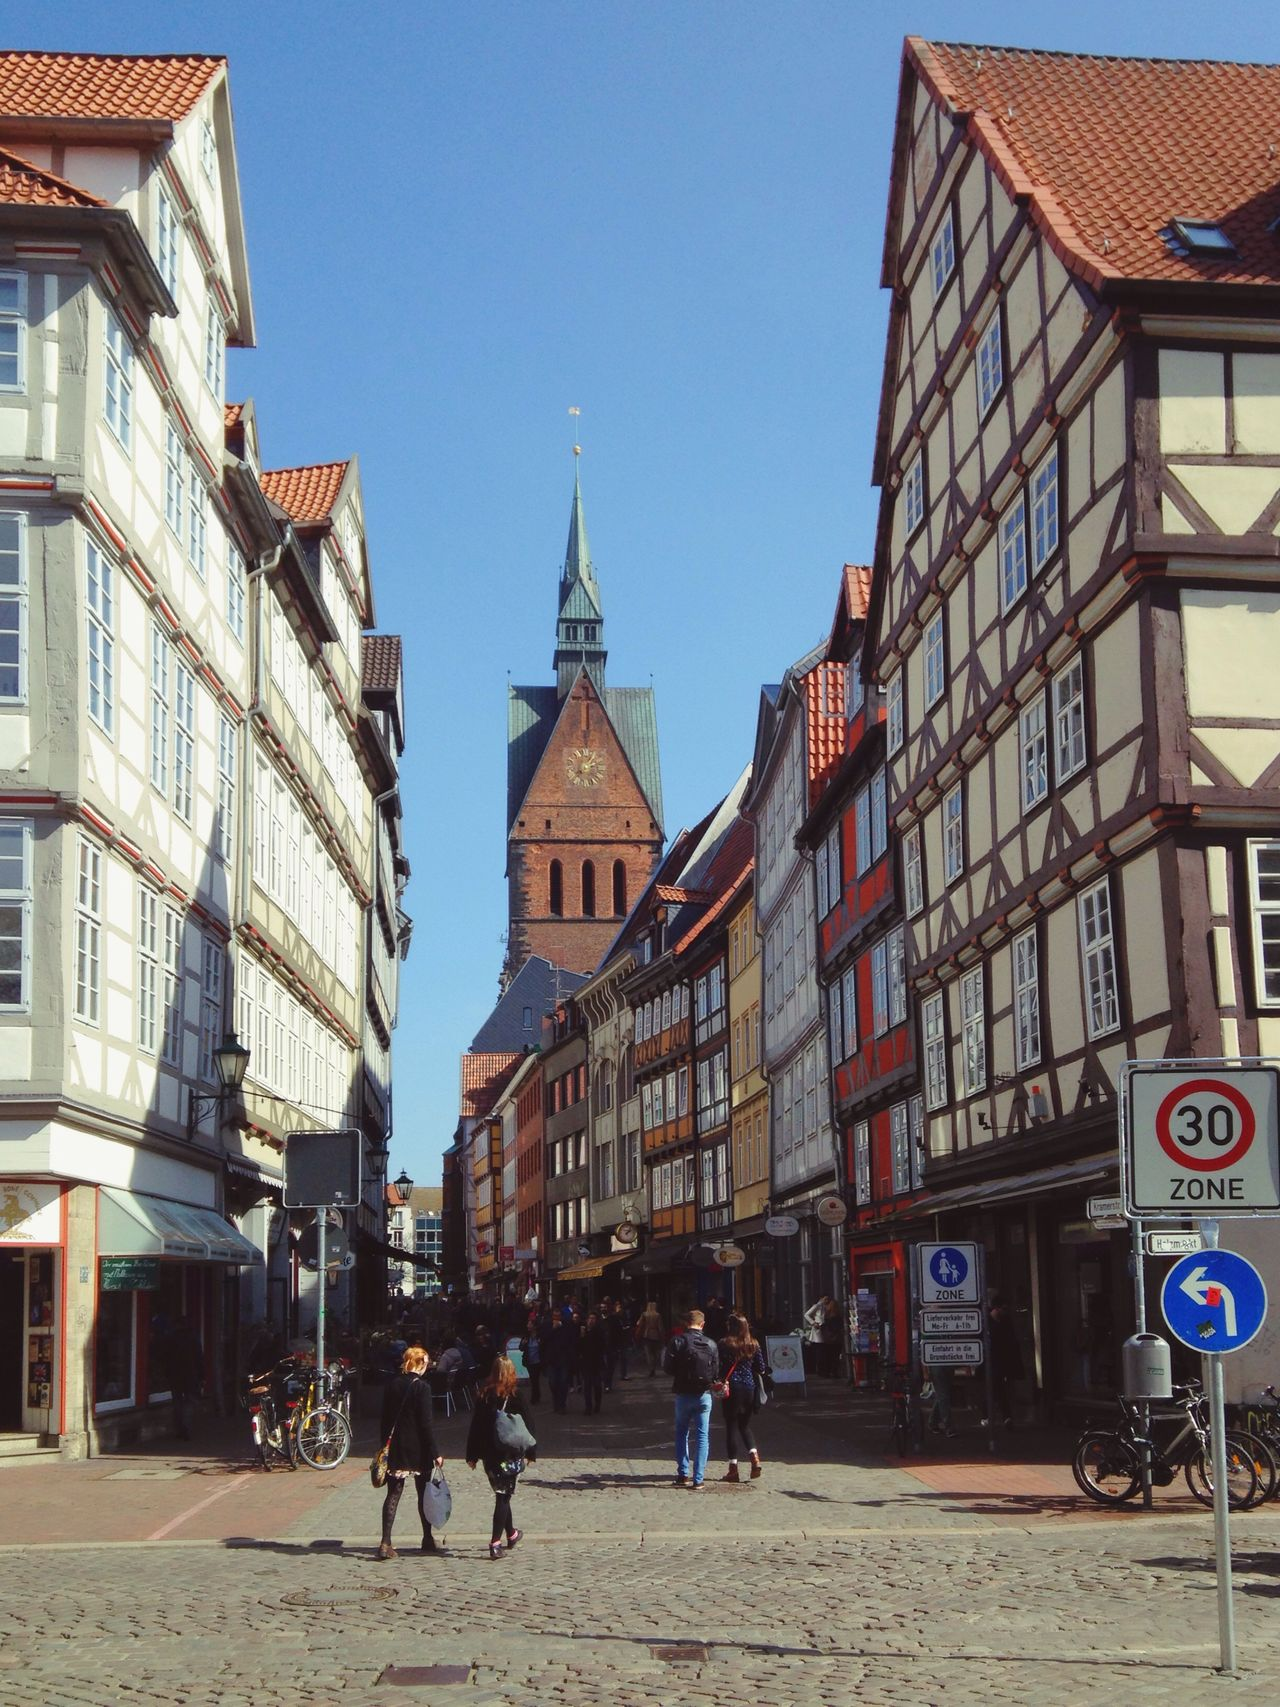 Hannover Altstadt Marktkirche Hanover Germany Historic Architecture Half-timbered Houses Pedestrian Street